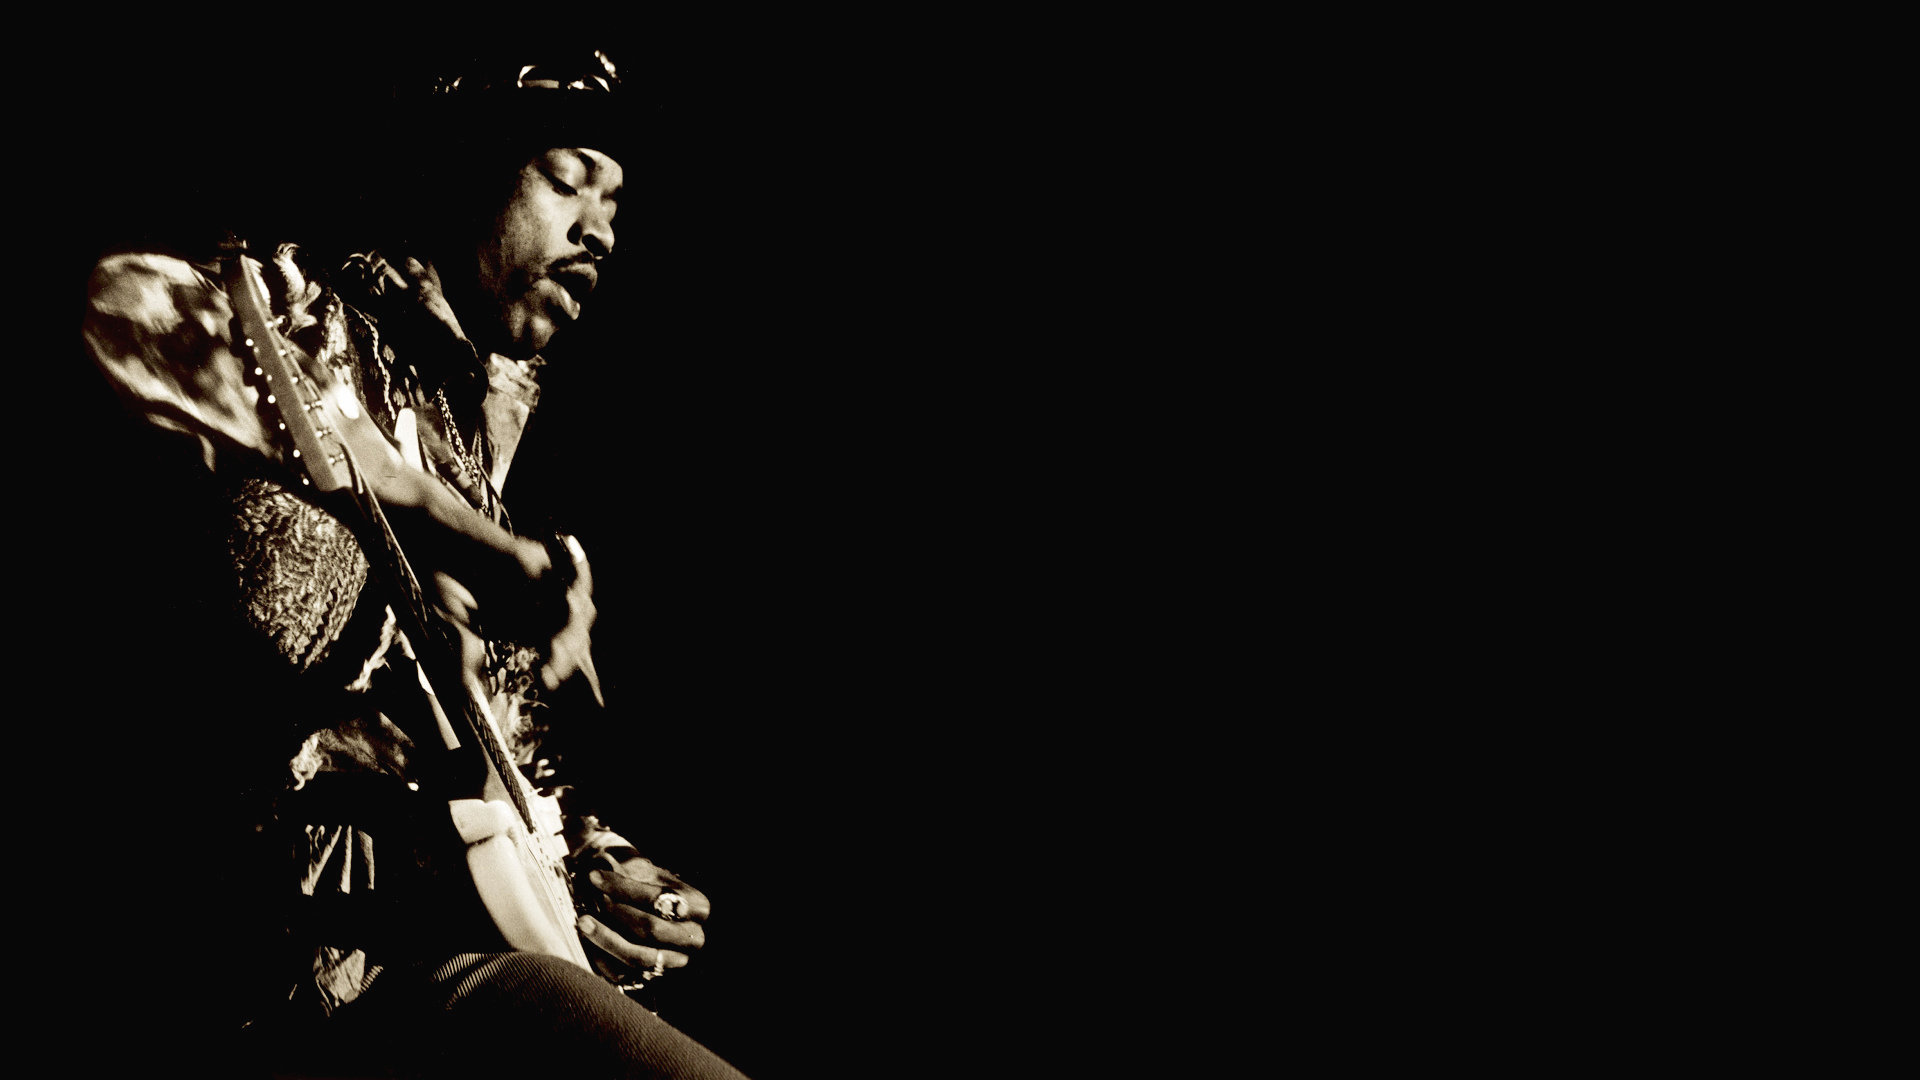 High resolution jimi hendrix full hd wallpaper id293214 for desktop altavistaventures Choice Image